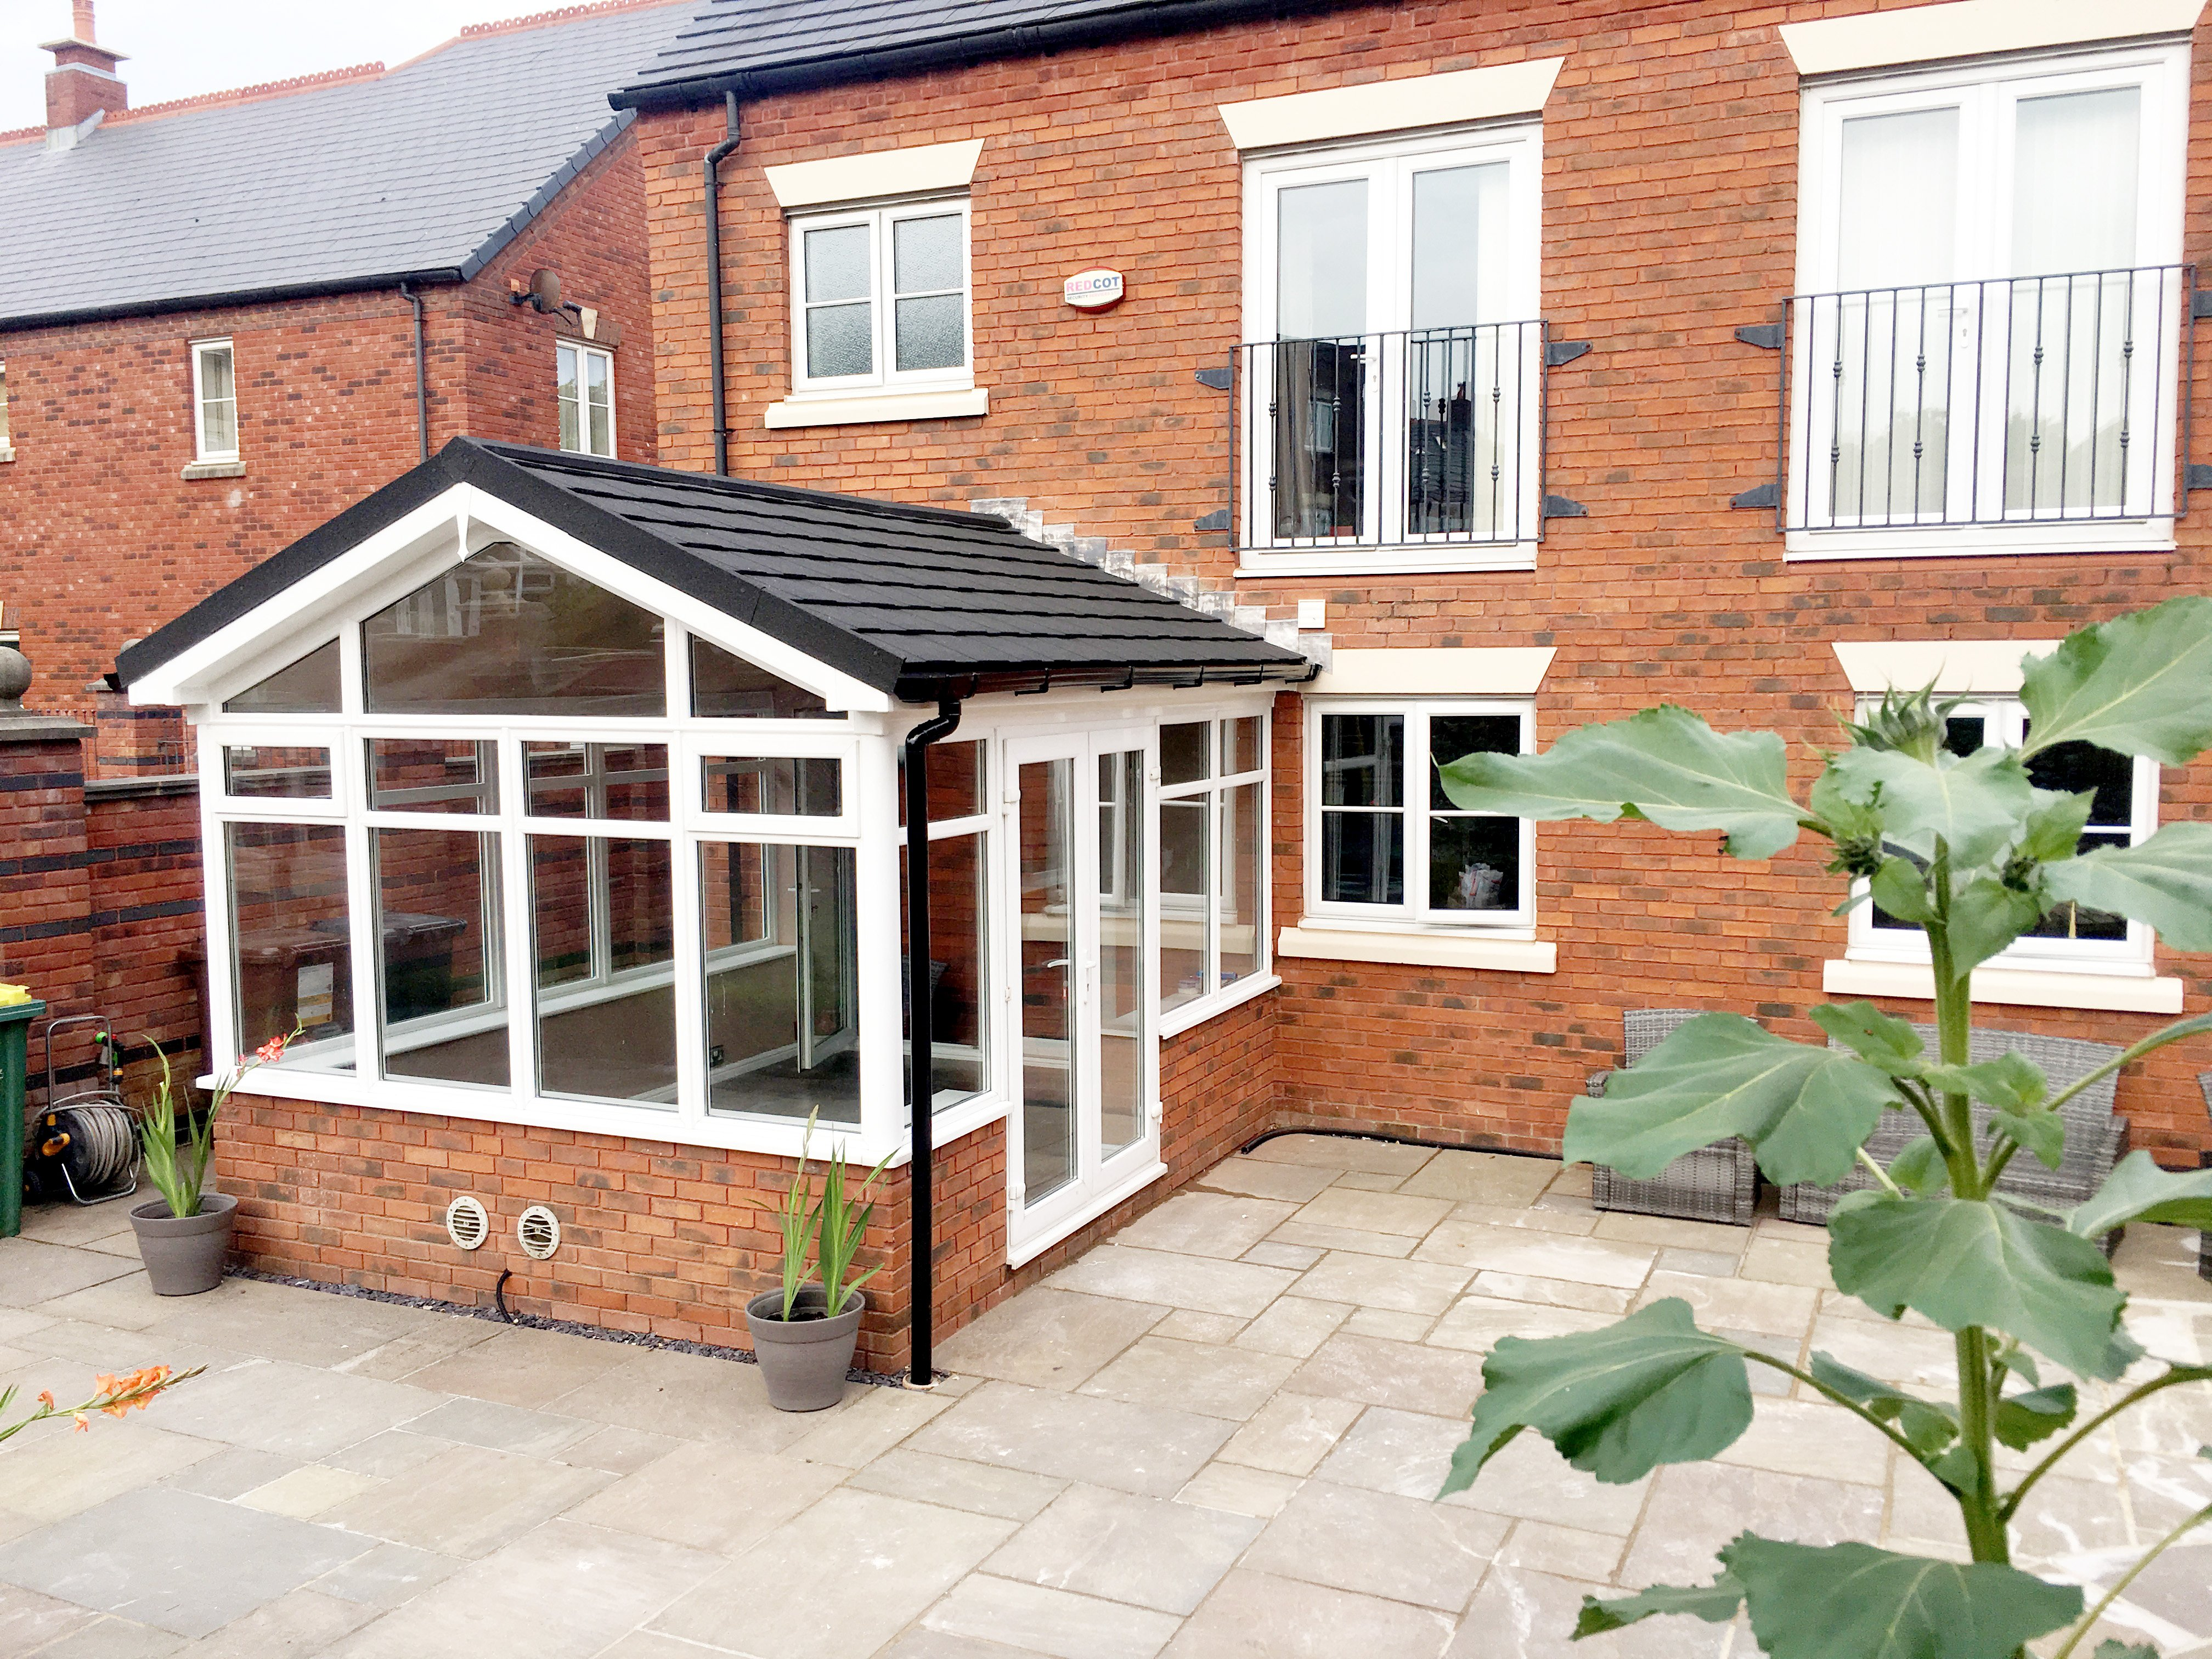 SupaLite Tiled Conservatory Roof Systems